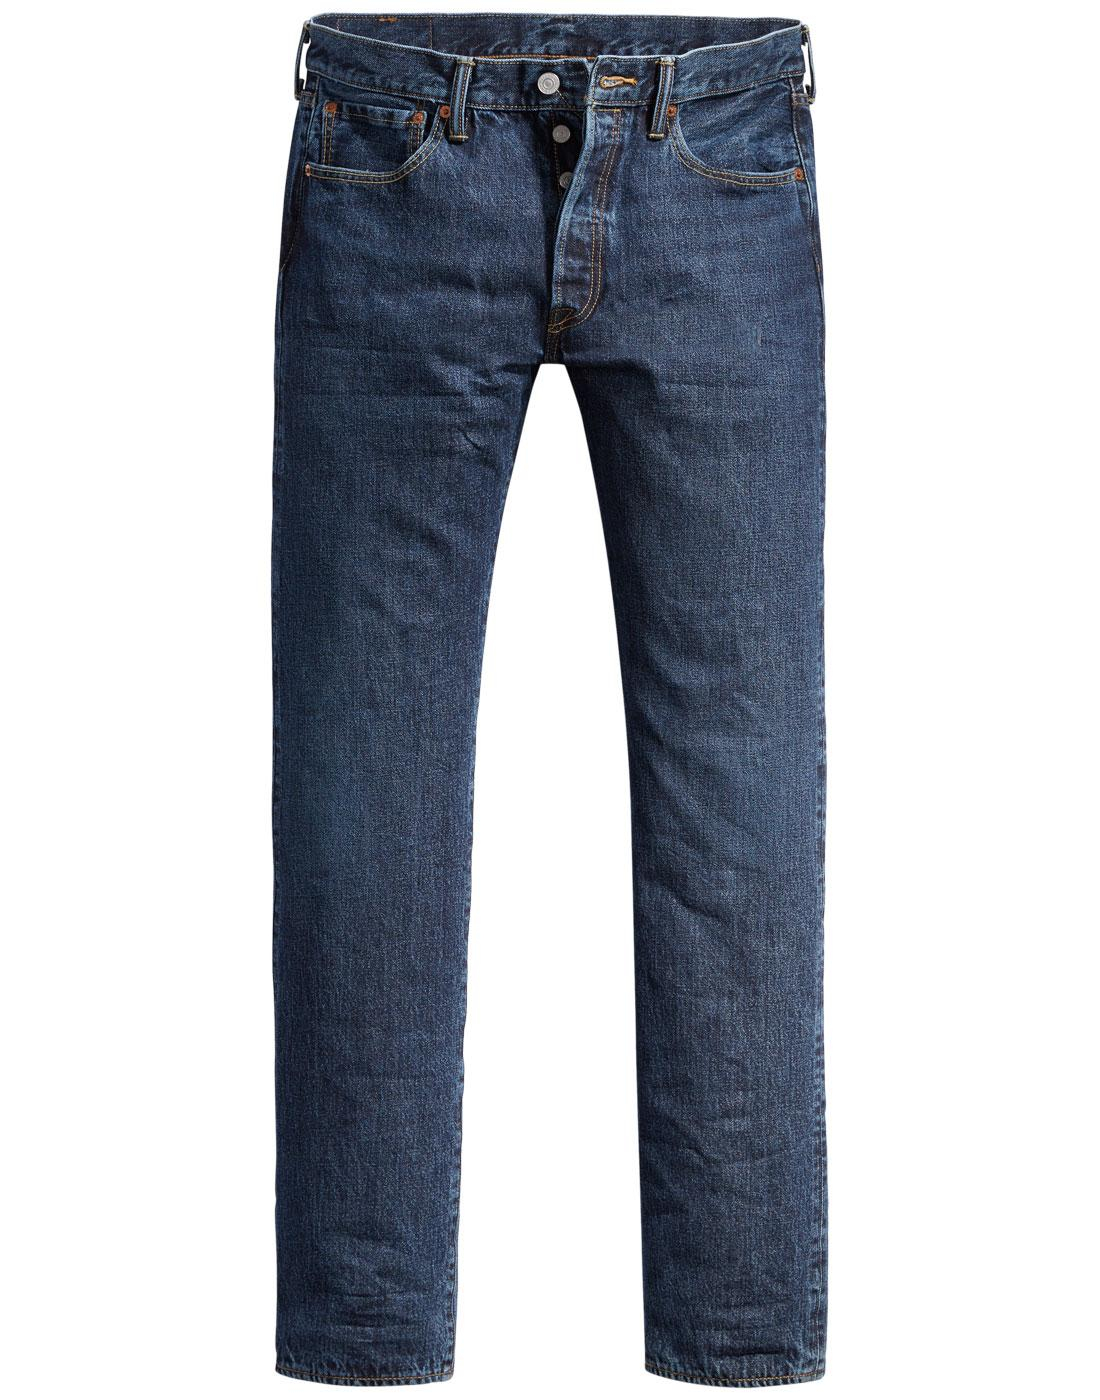 LEVI'S 501 Mod Original Straight Jeans LUTHER BLUE